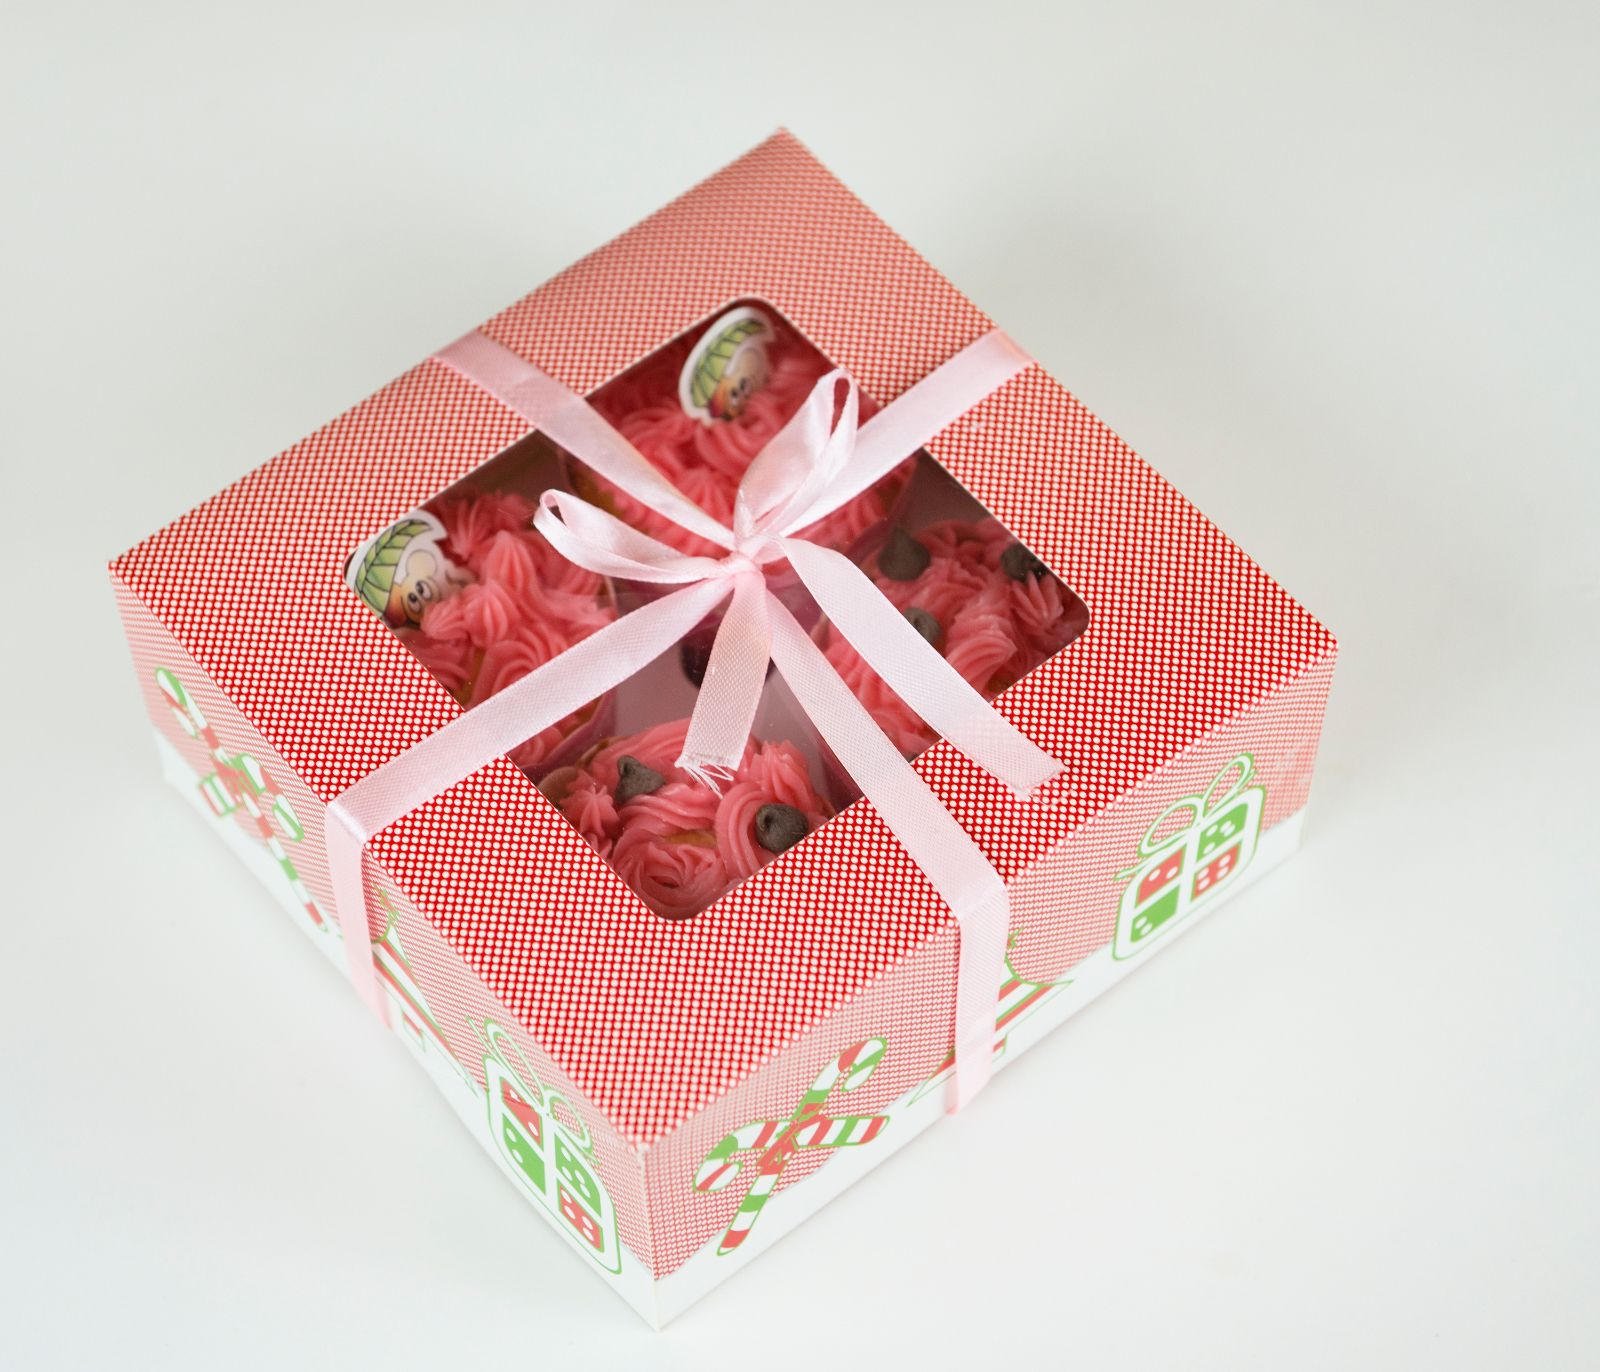 Christmas Cupcake Boxes Inserts For Cupcake Muffin Holiday Party Gift 12 Cts Holiday Party Gift Christmas Cupcakes Cupcake Boxes